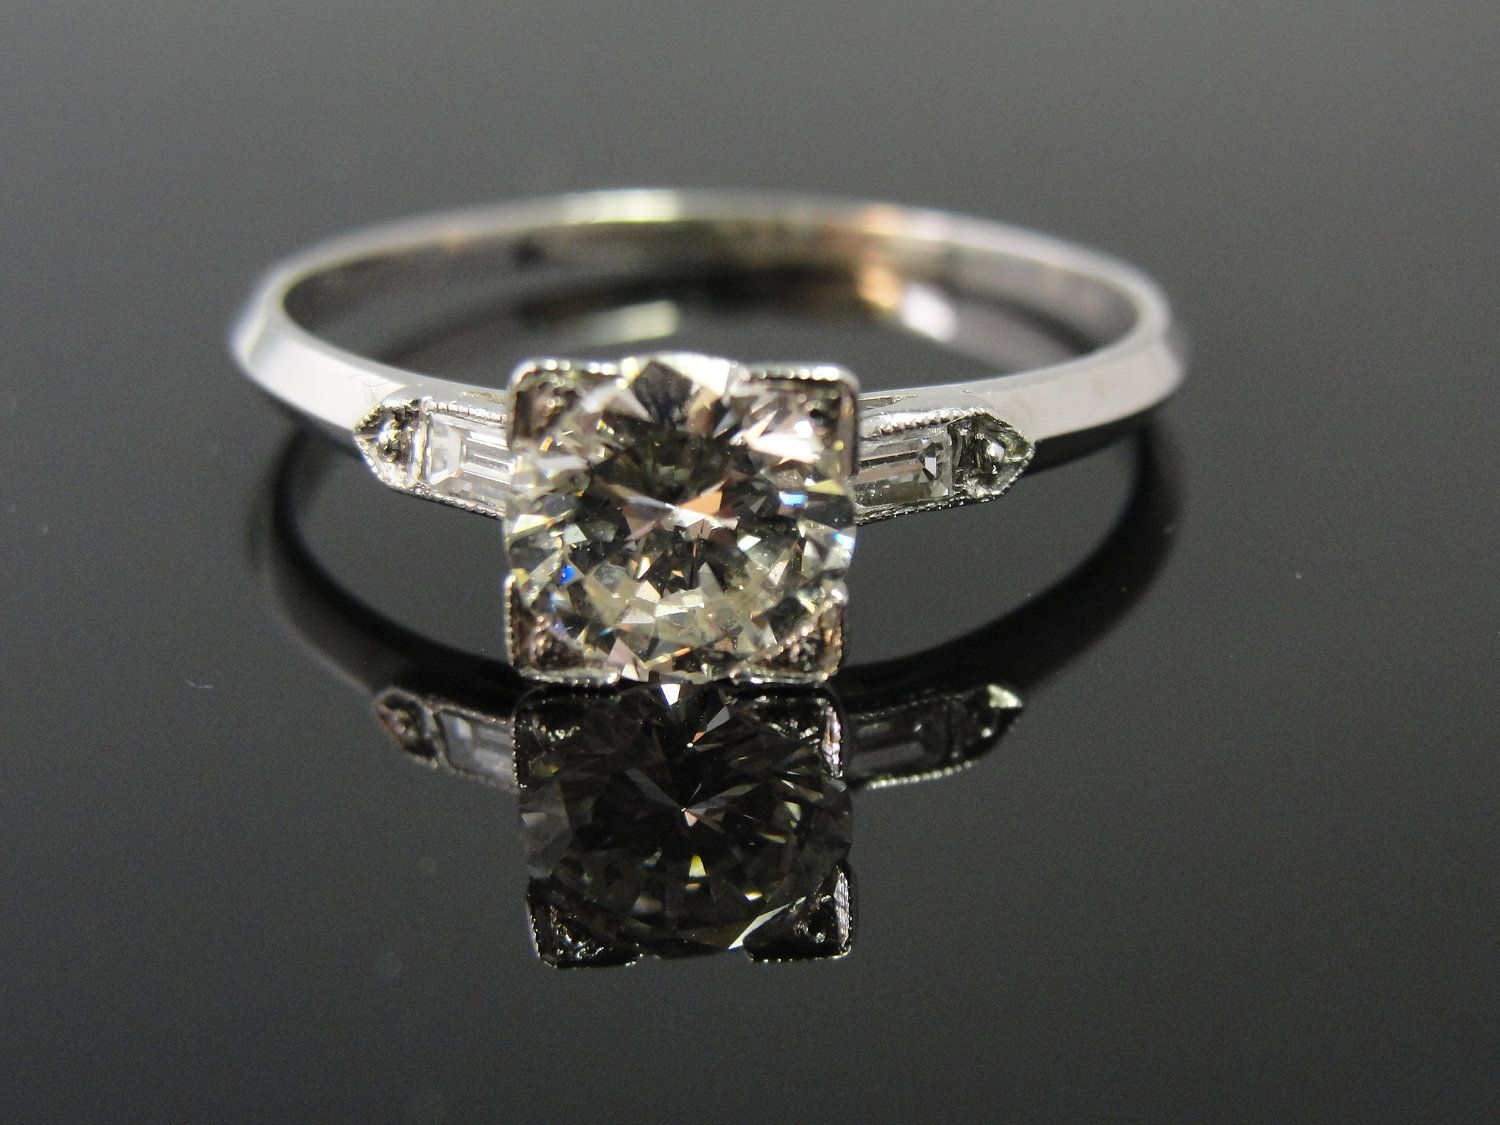 Art Deco 1920s Simple Solitaire Engagement Ring with